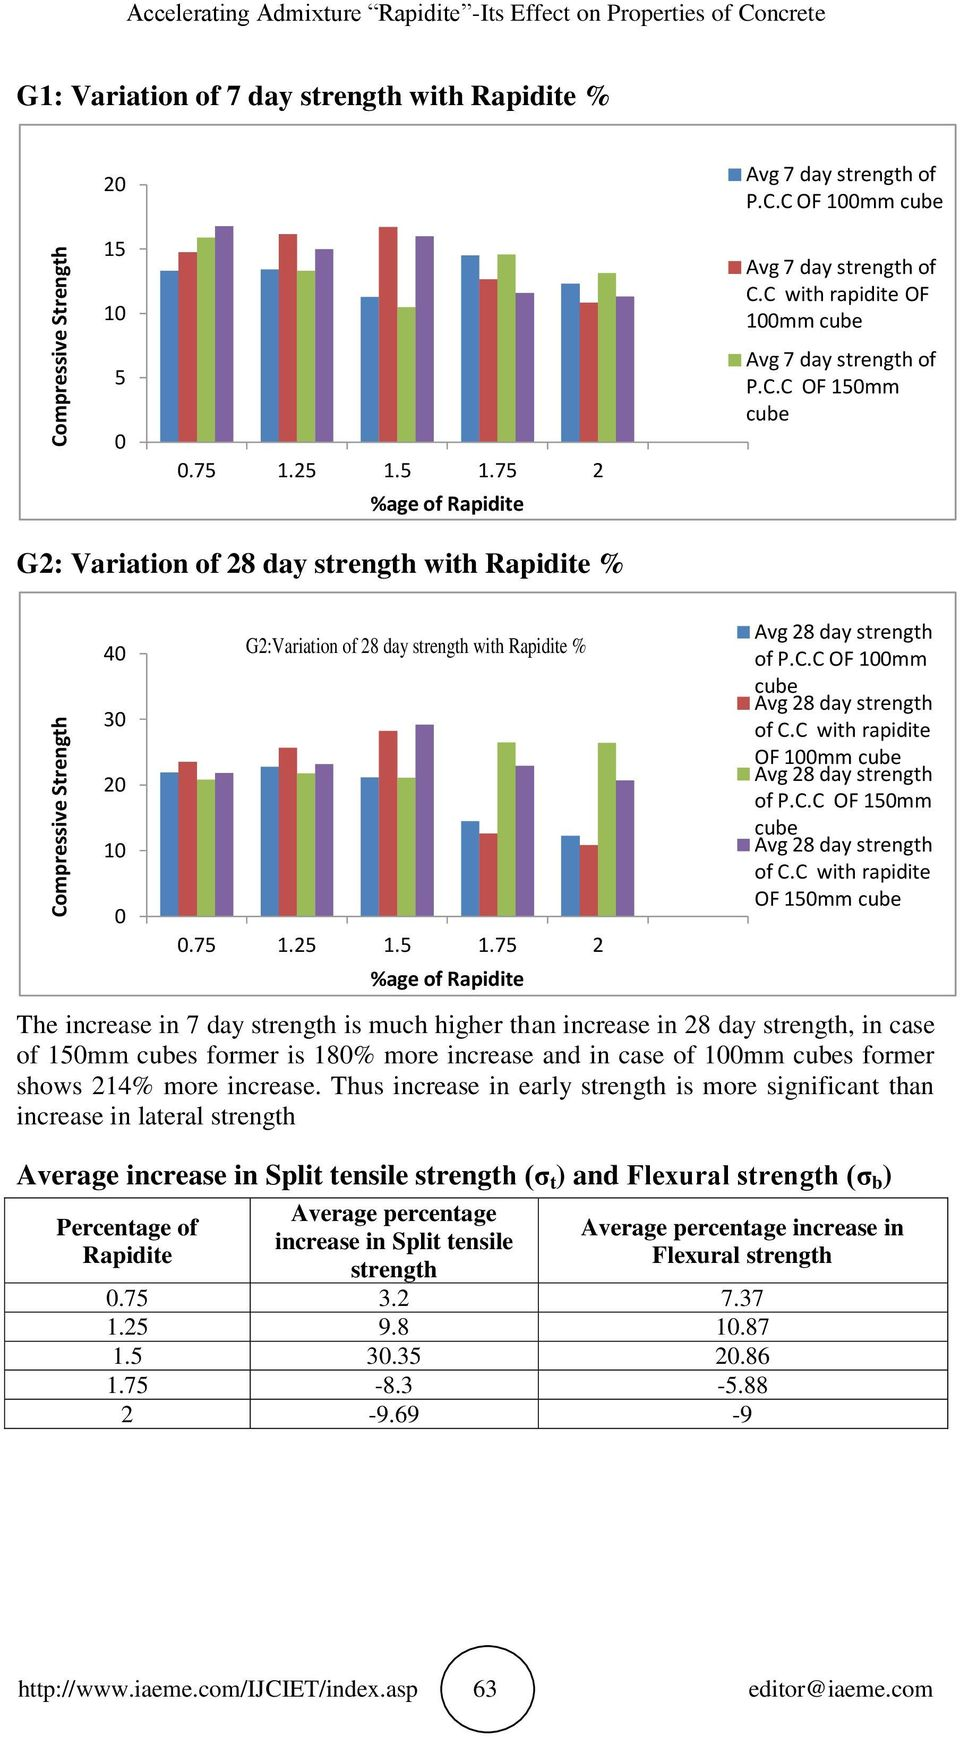 25 1.5 1.75 2 %age of Avg 7 day strength of OF 1mm Avg 7 day strength of rapidite OF 1mm Avg 7 day strength of OF mm G2: Variation of 28 day strength % 4 3 2 1 The increase in 7 day strength is much